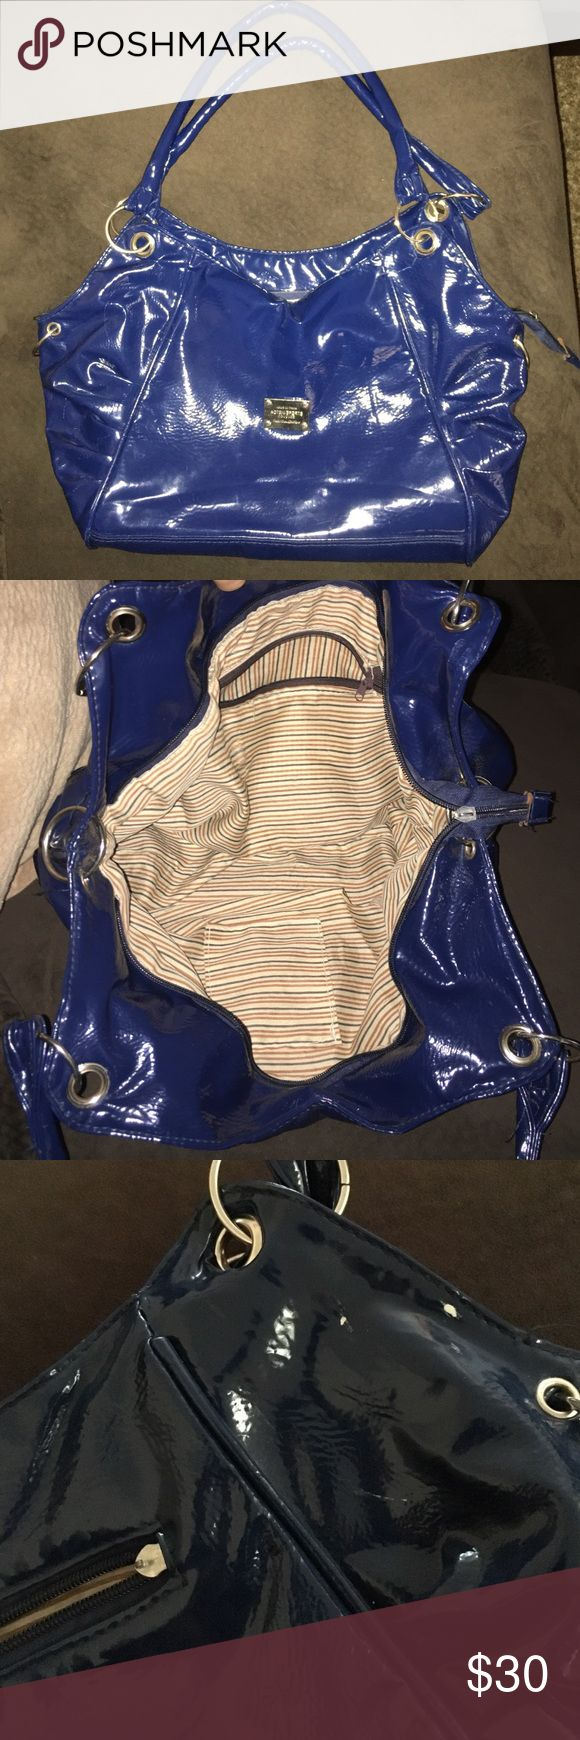 Purse I bought this in Vegas a few years ago. Used. There are missing/ broken pieces on the zipper parts as pictured, but zippers are still functional. And 3 tiny scuff marks also pictured. Still in good condition! Bags Shoulder Bags